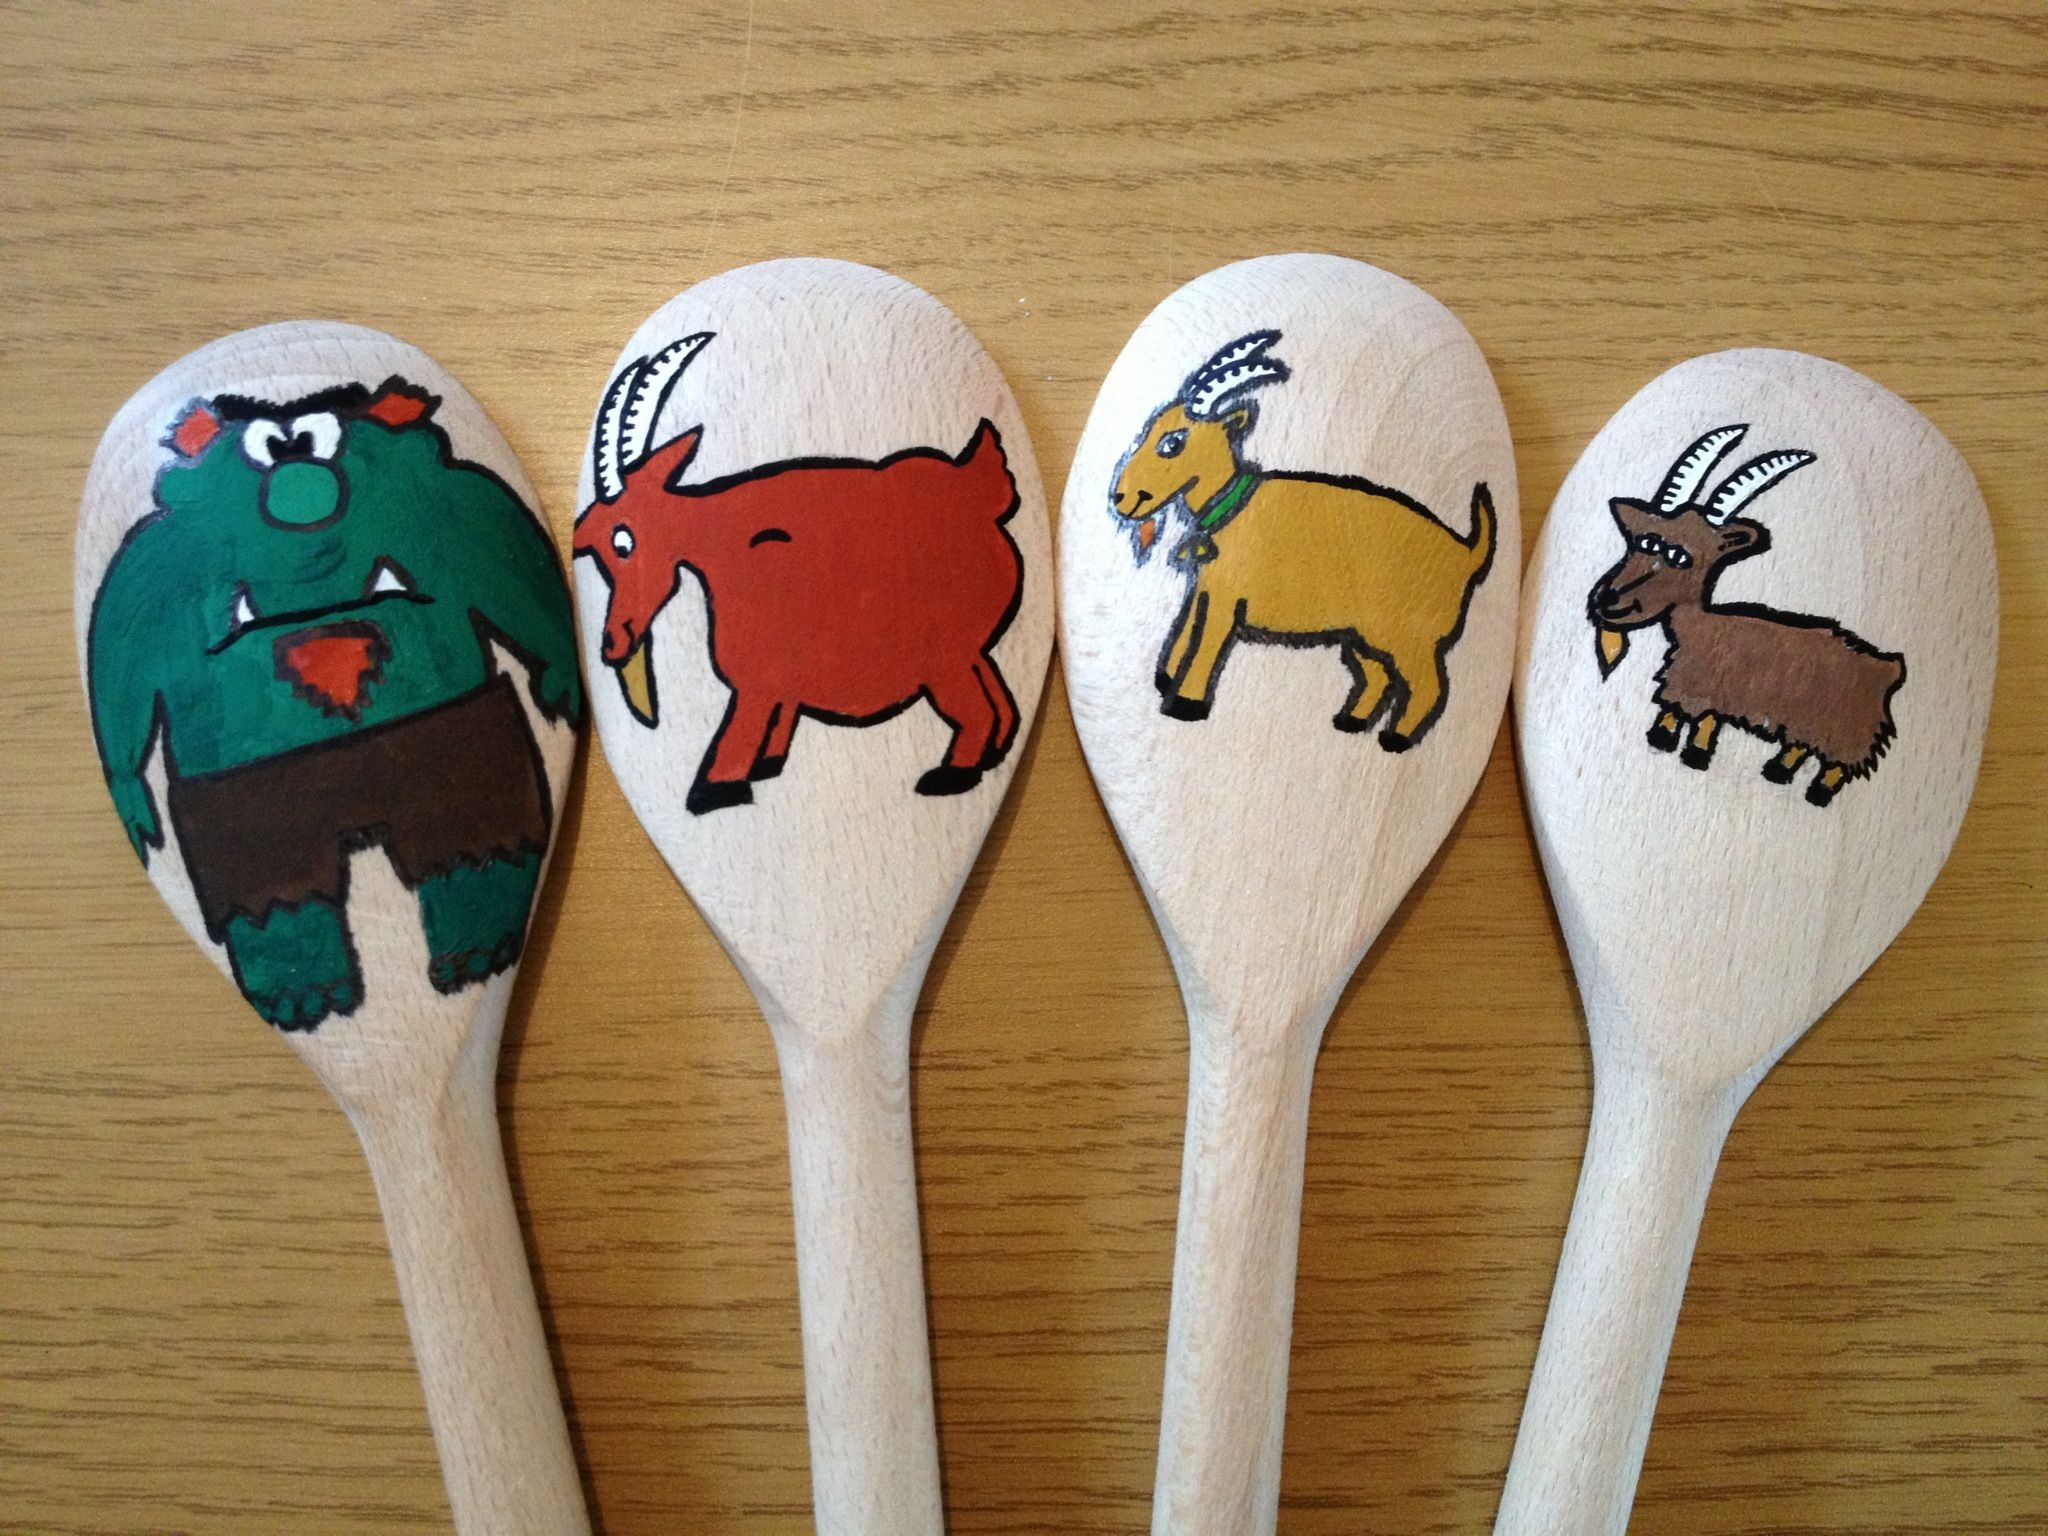 The Three Billy Goats Gruff Wooden Spoon Puppets